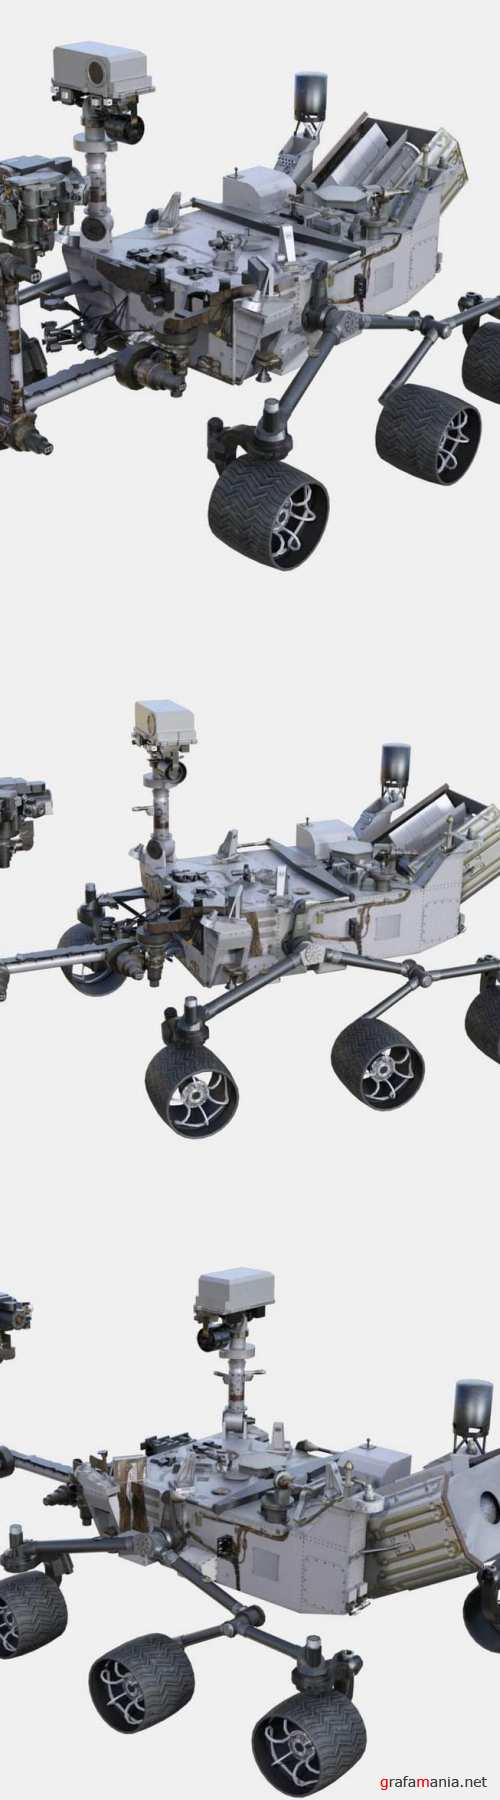 NASA Curiosity Rover 3D Model